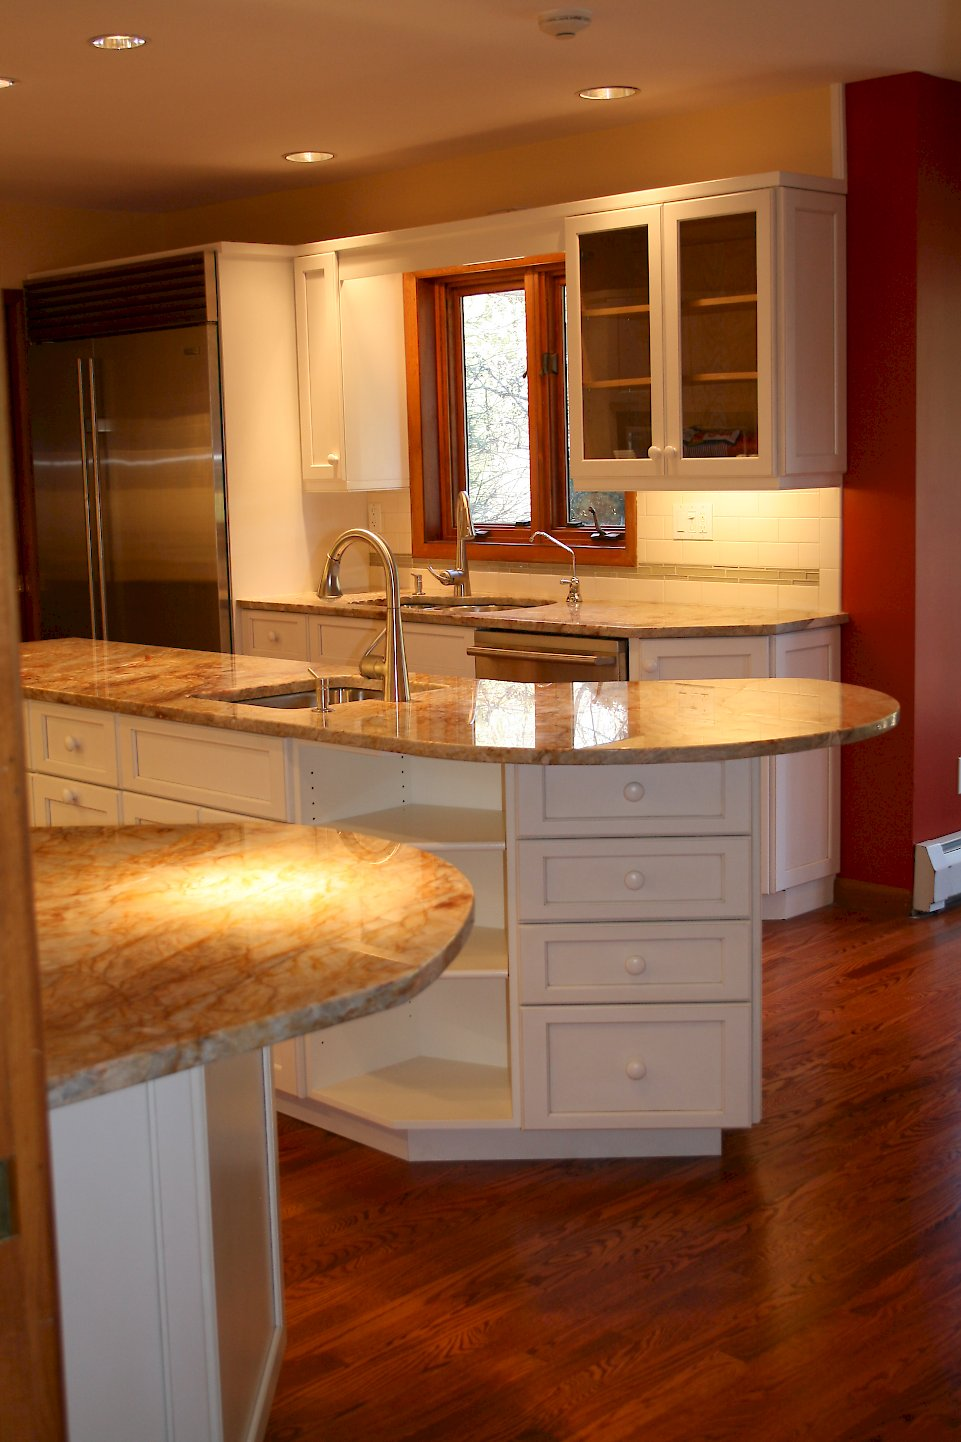 Plenty of drawers and open shelving in the kitchen island.